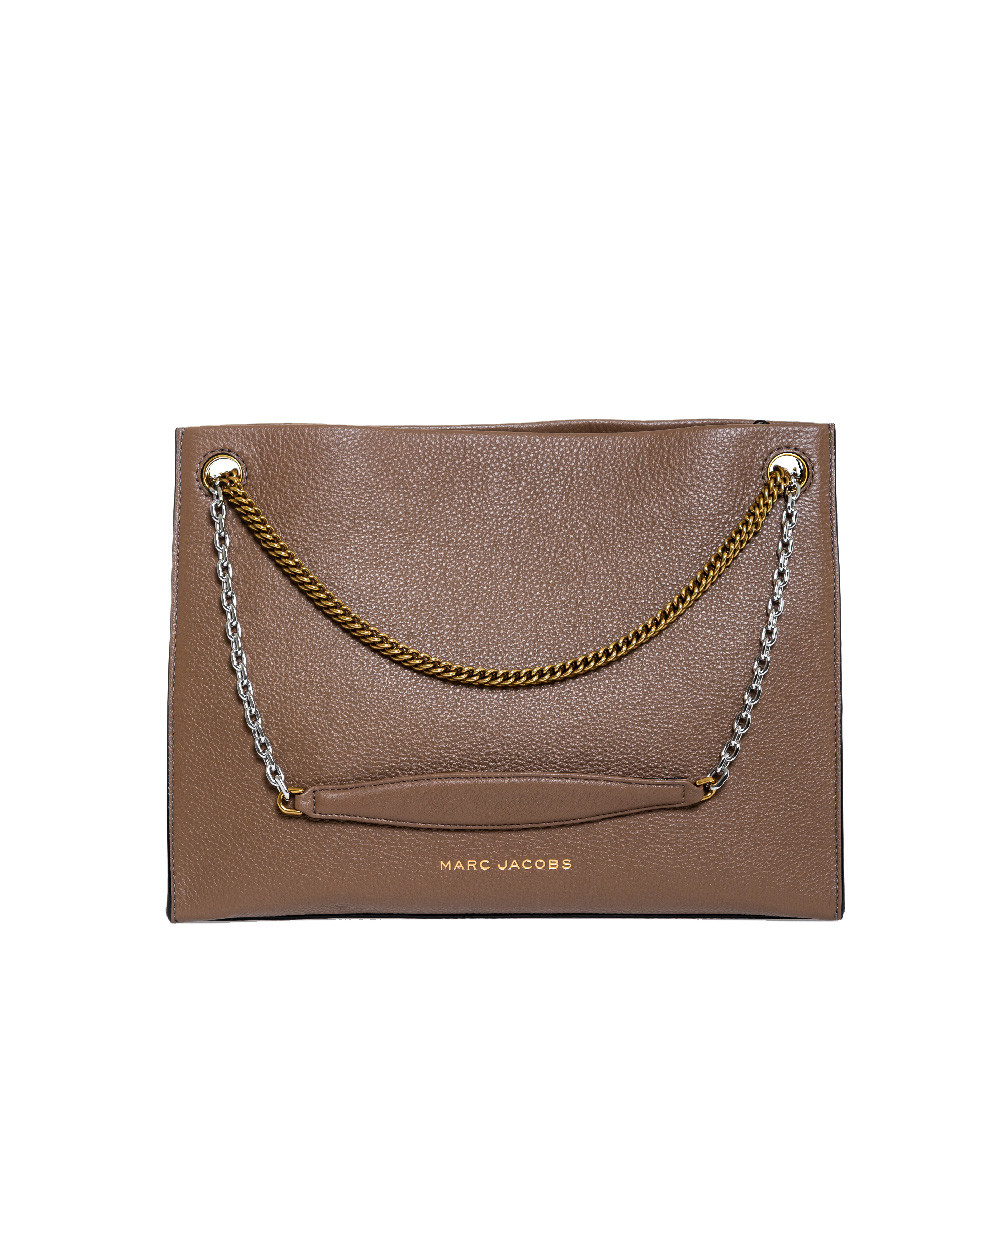 """Brown bag """"Double Link 34"""" Marc Jacobs for women"""